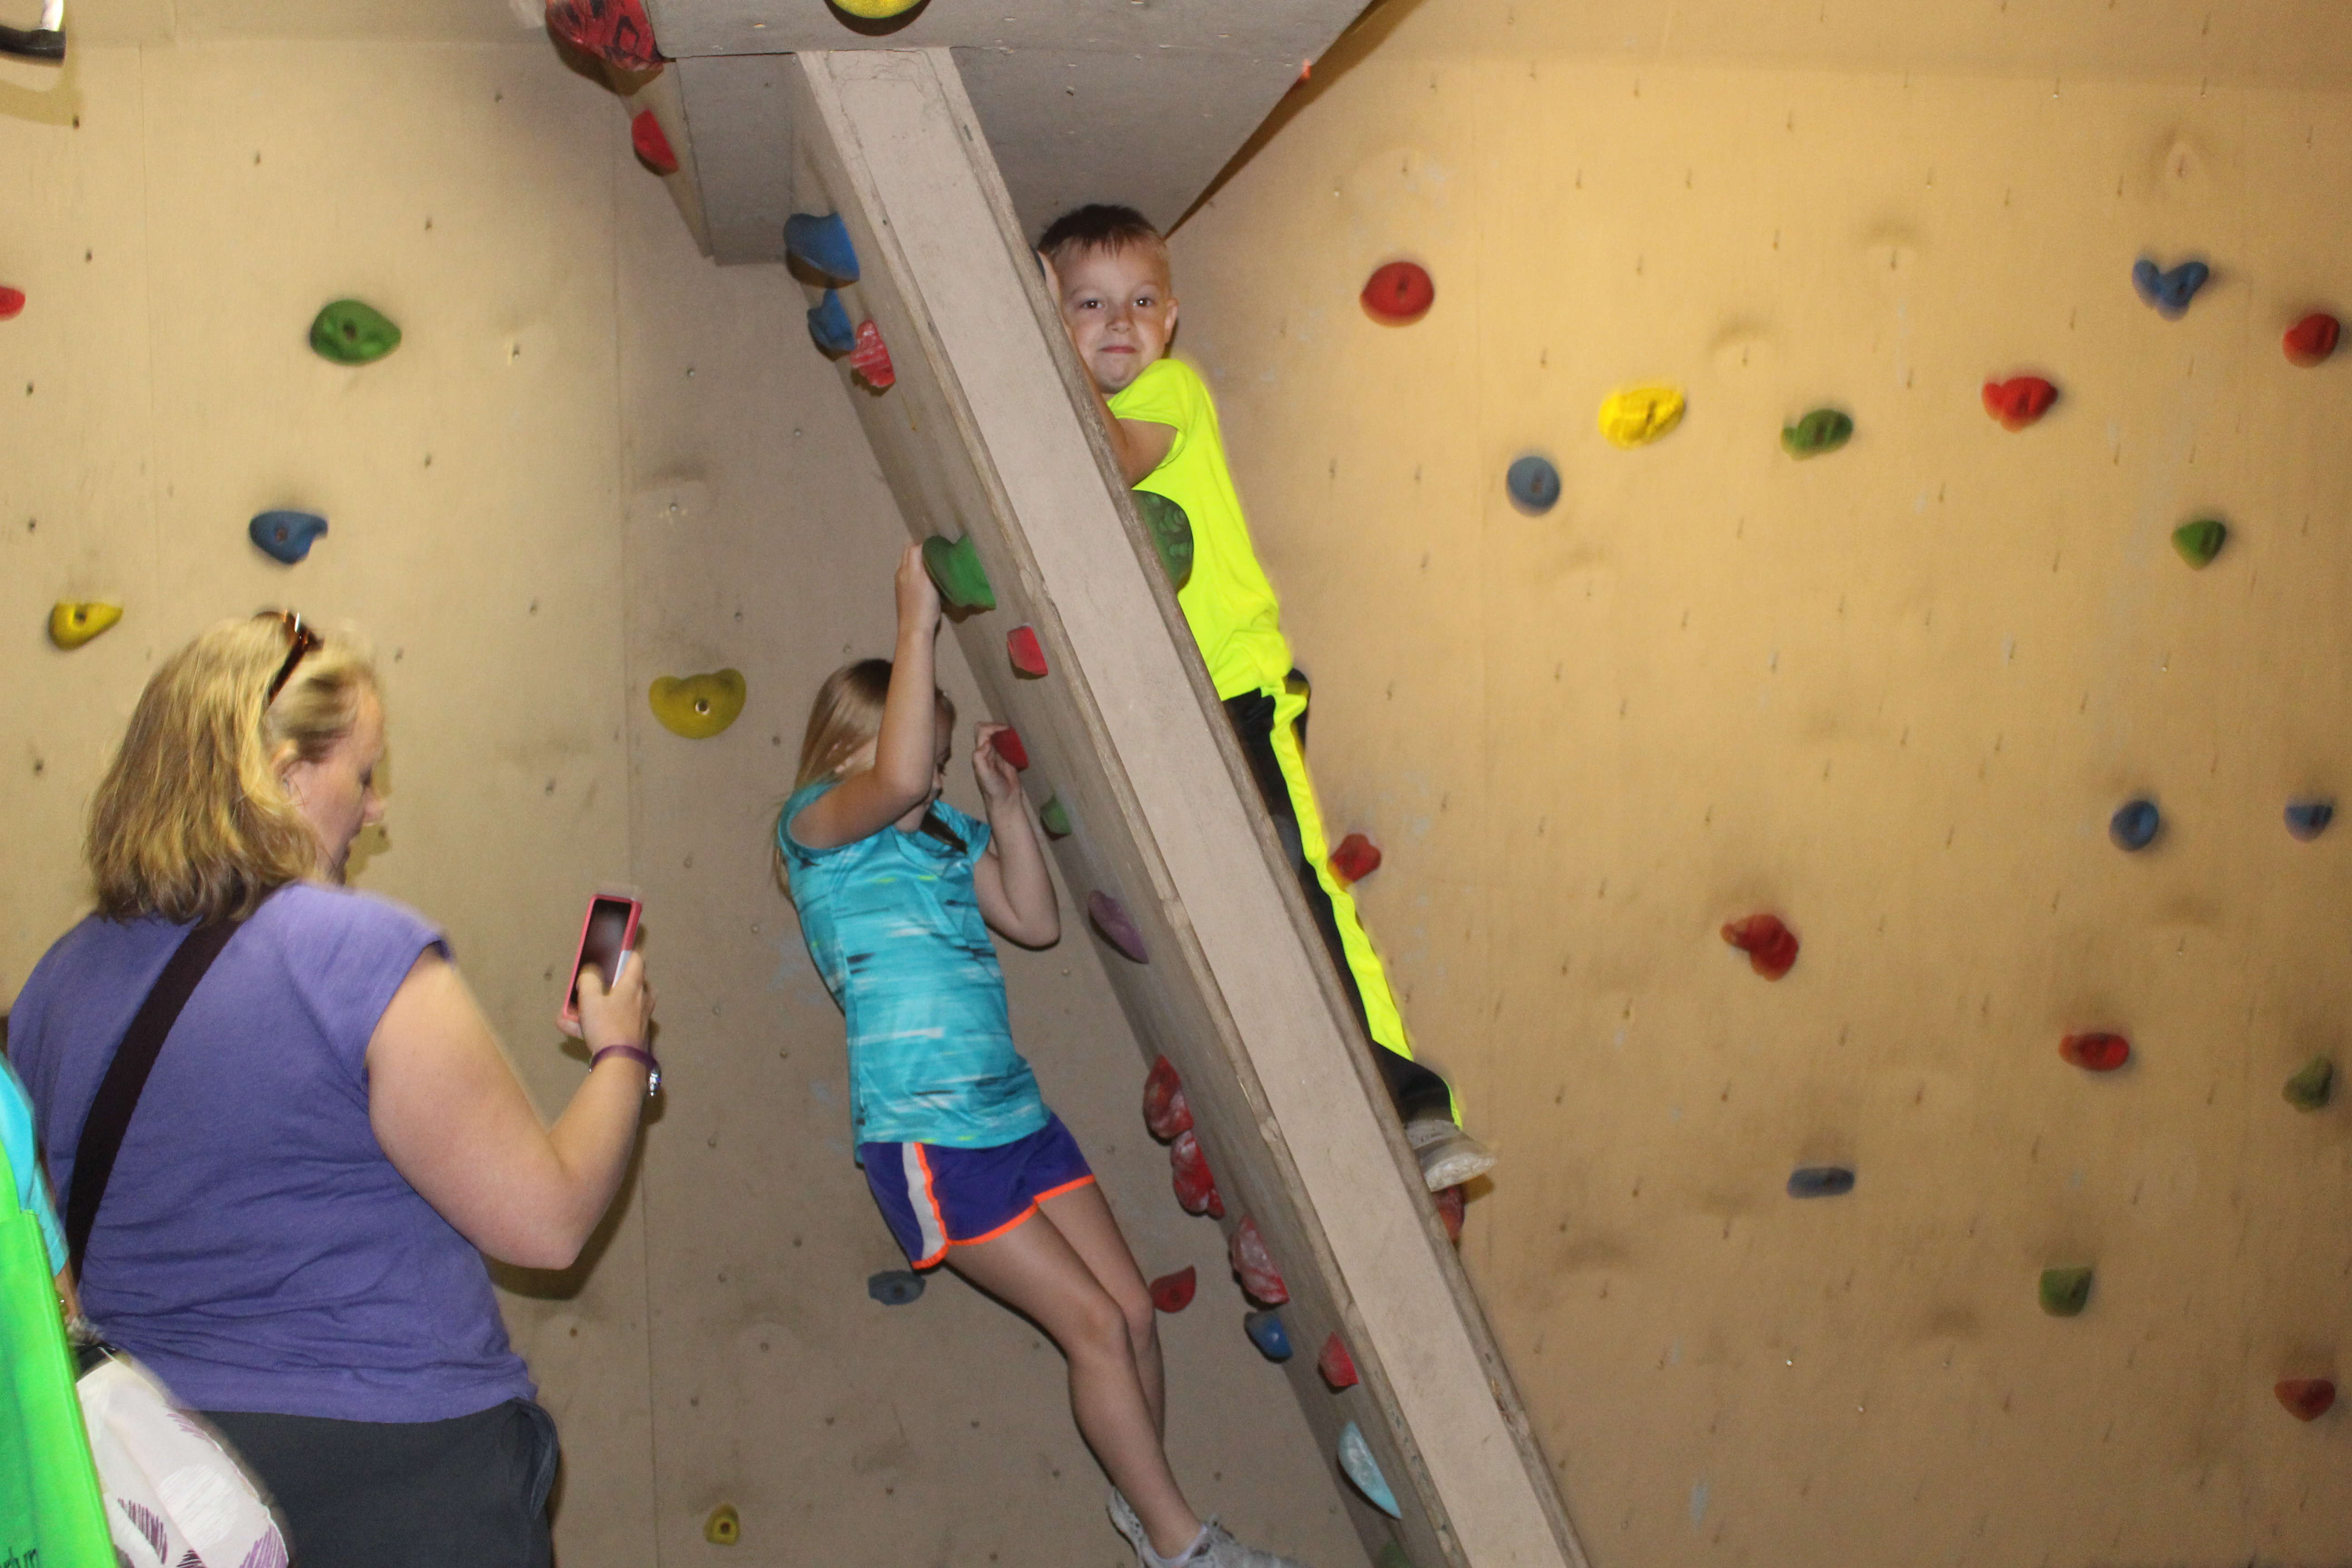 The Bouldering Room